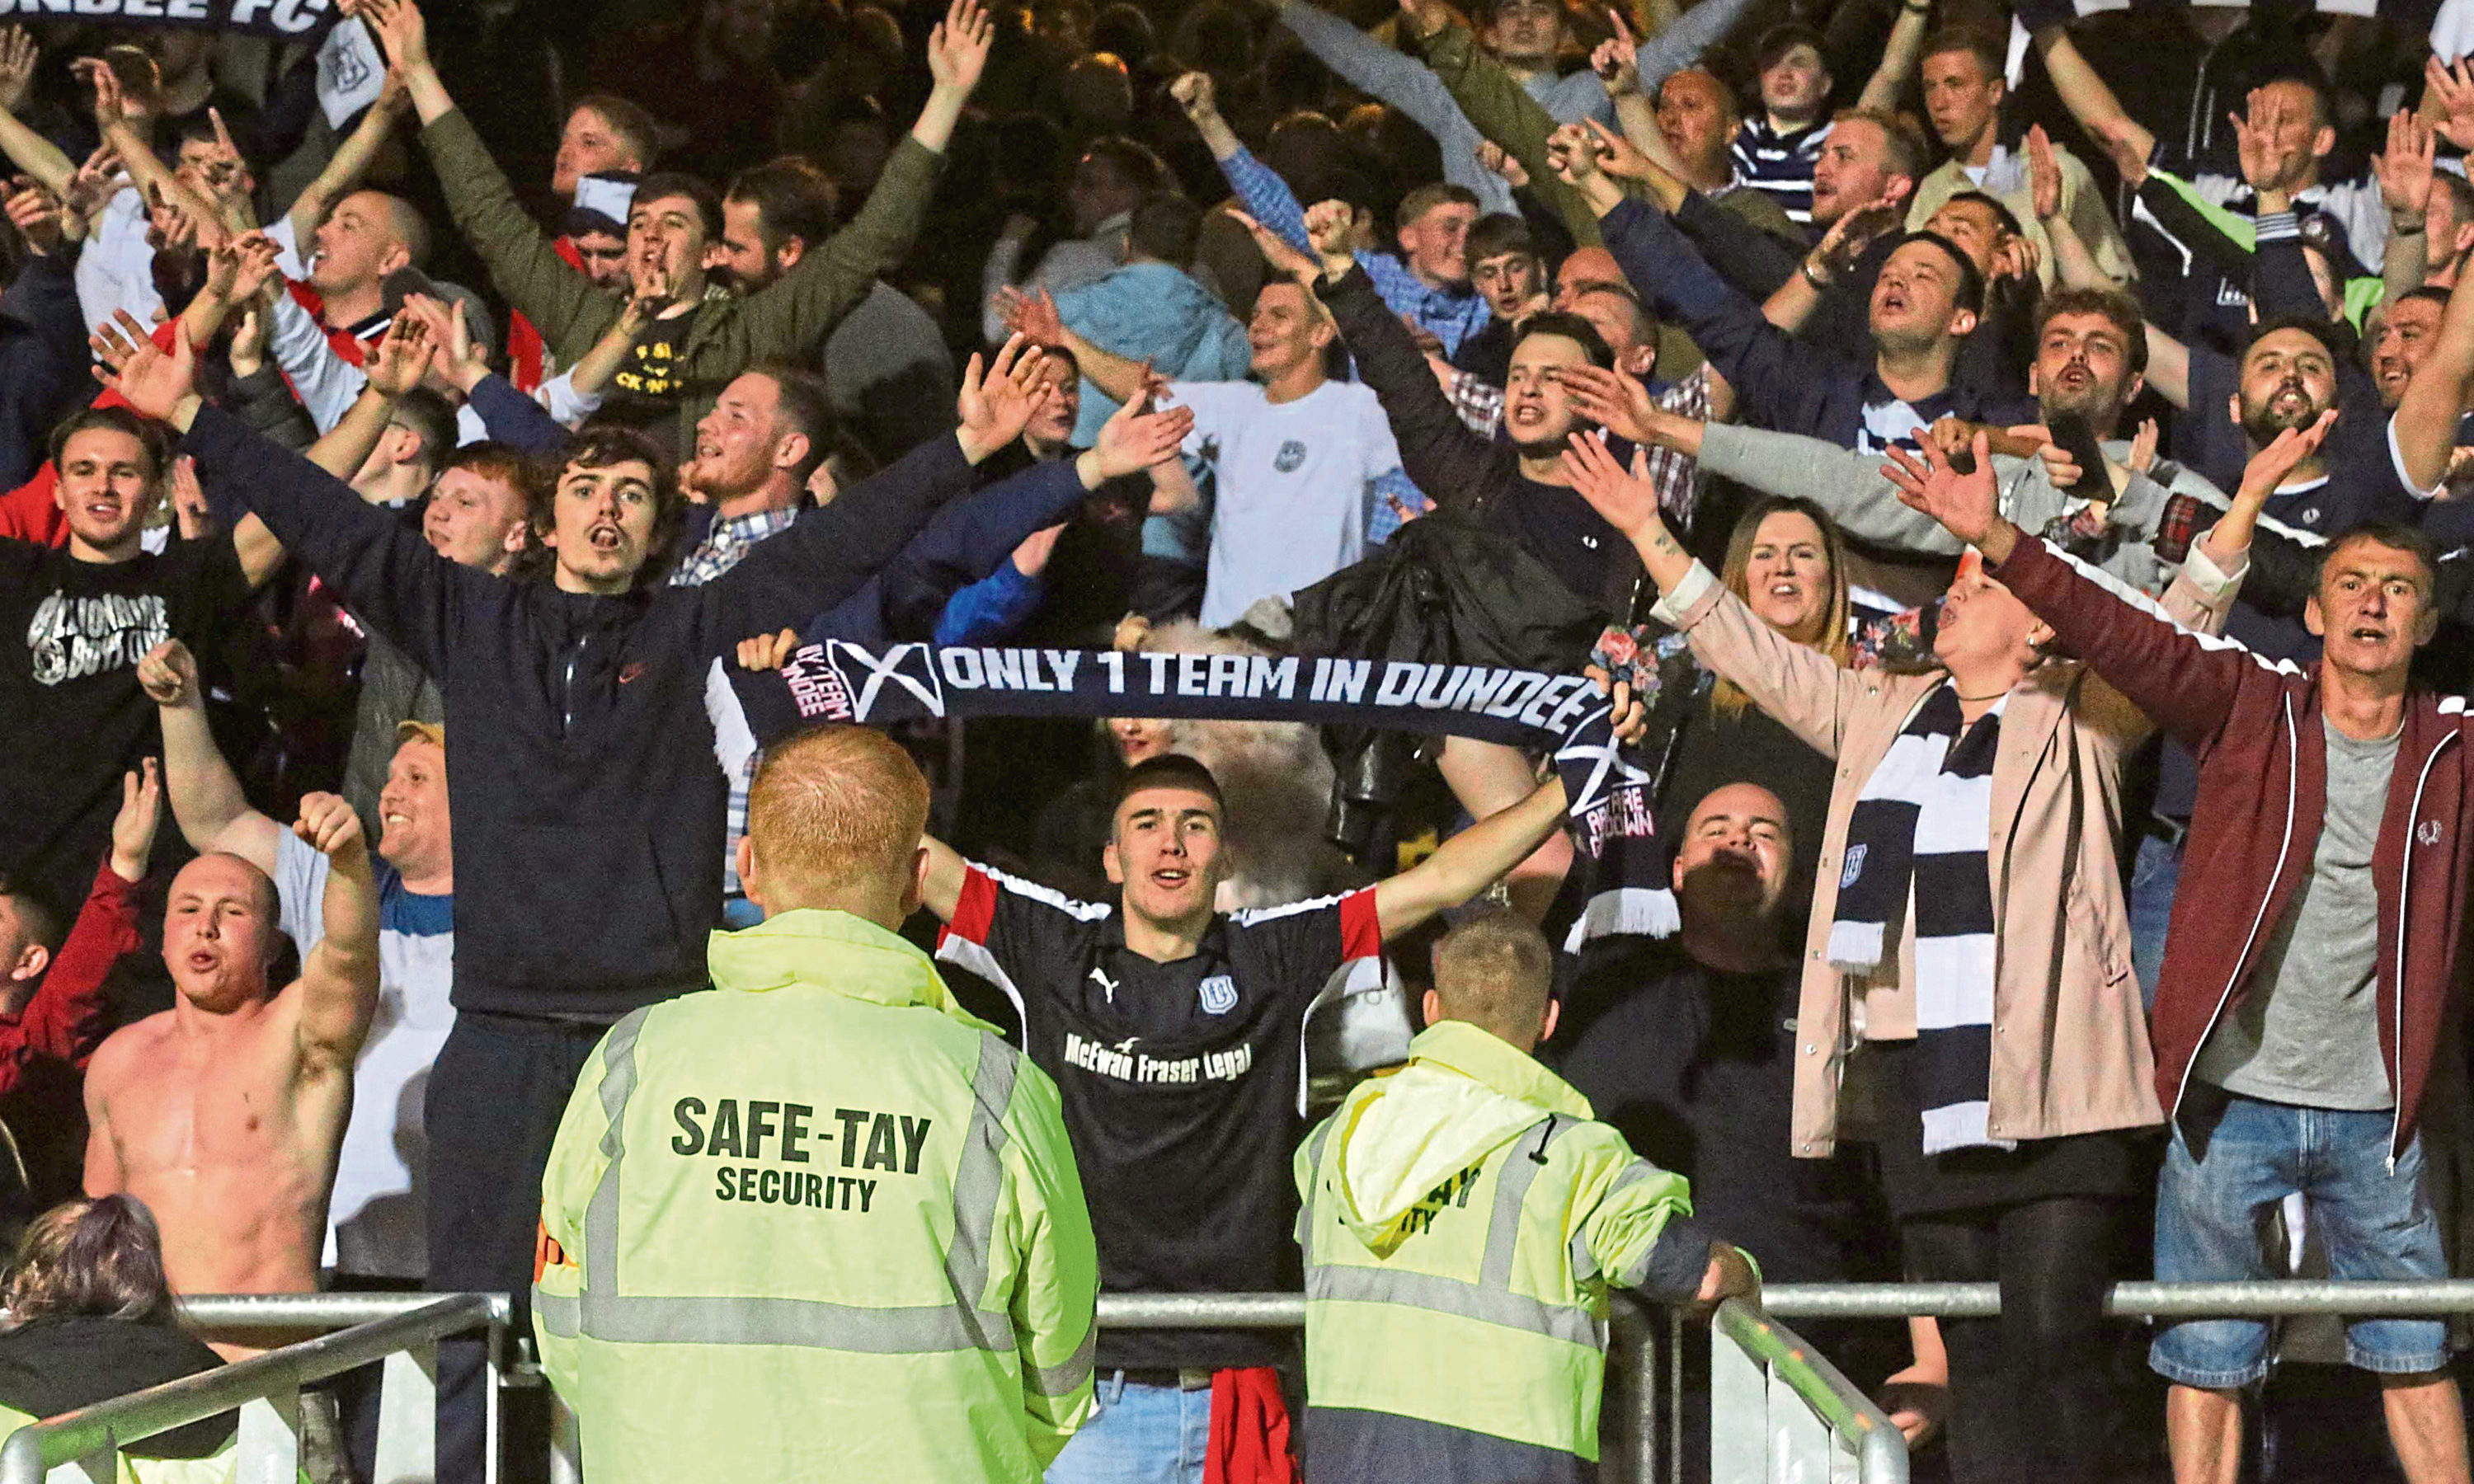 Dundee fans will be keen for revenge after losing 6-2 to their city rivals in August.